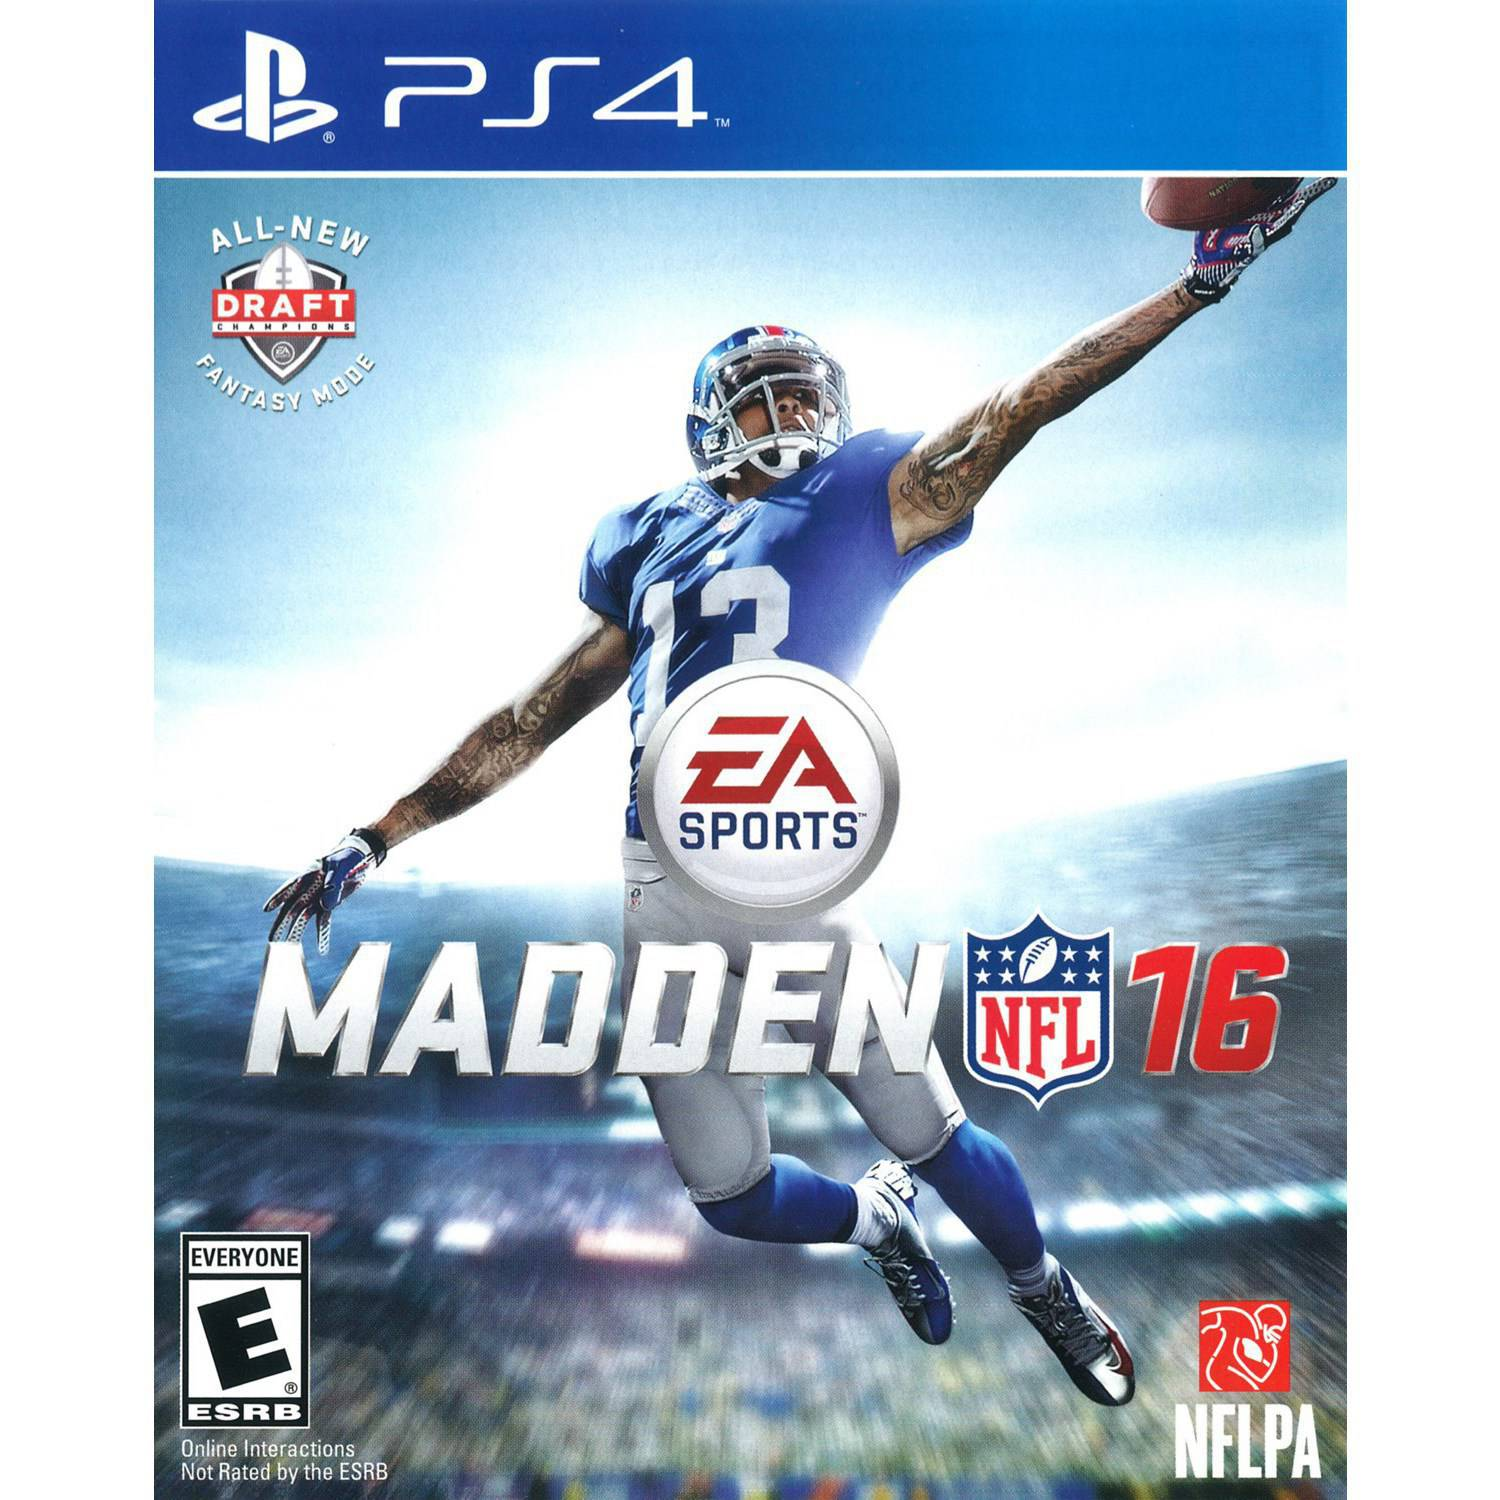 Madden NFL 16 (Playstation 4) by Electronic Arts Tiburon